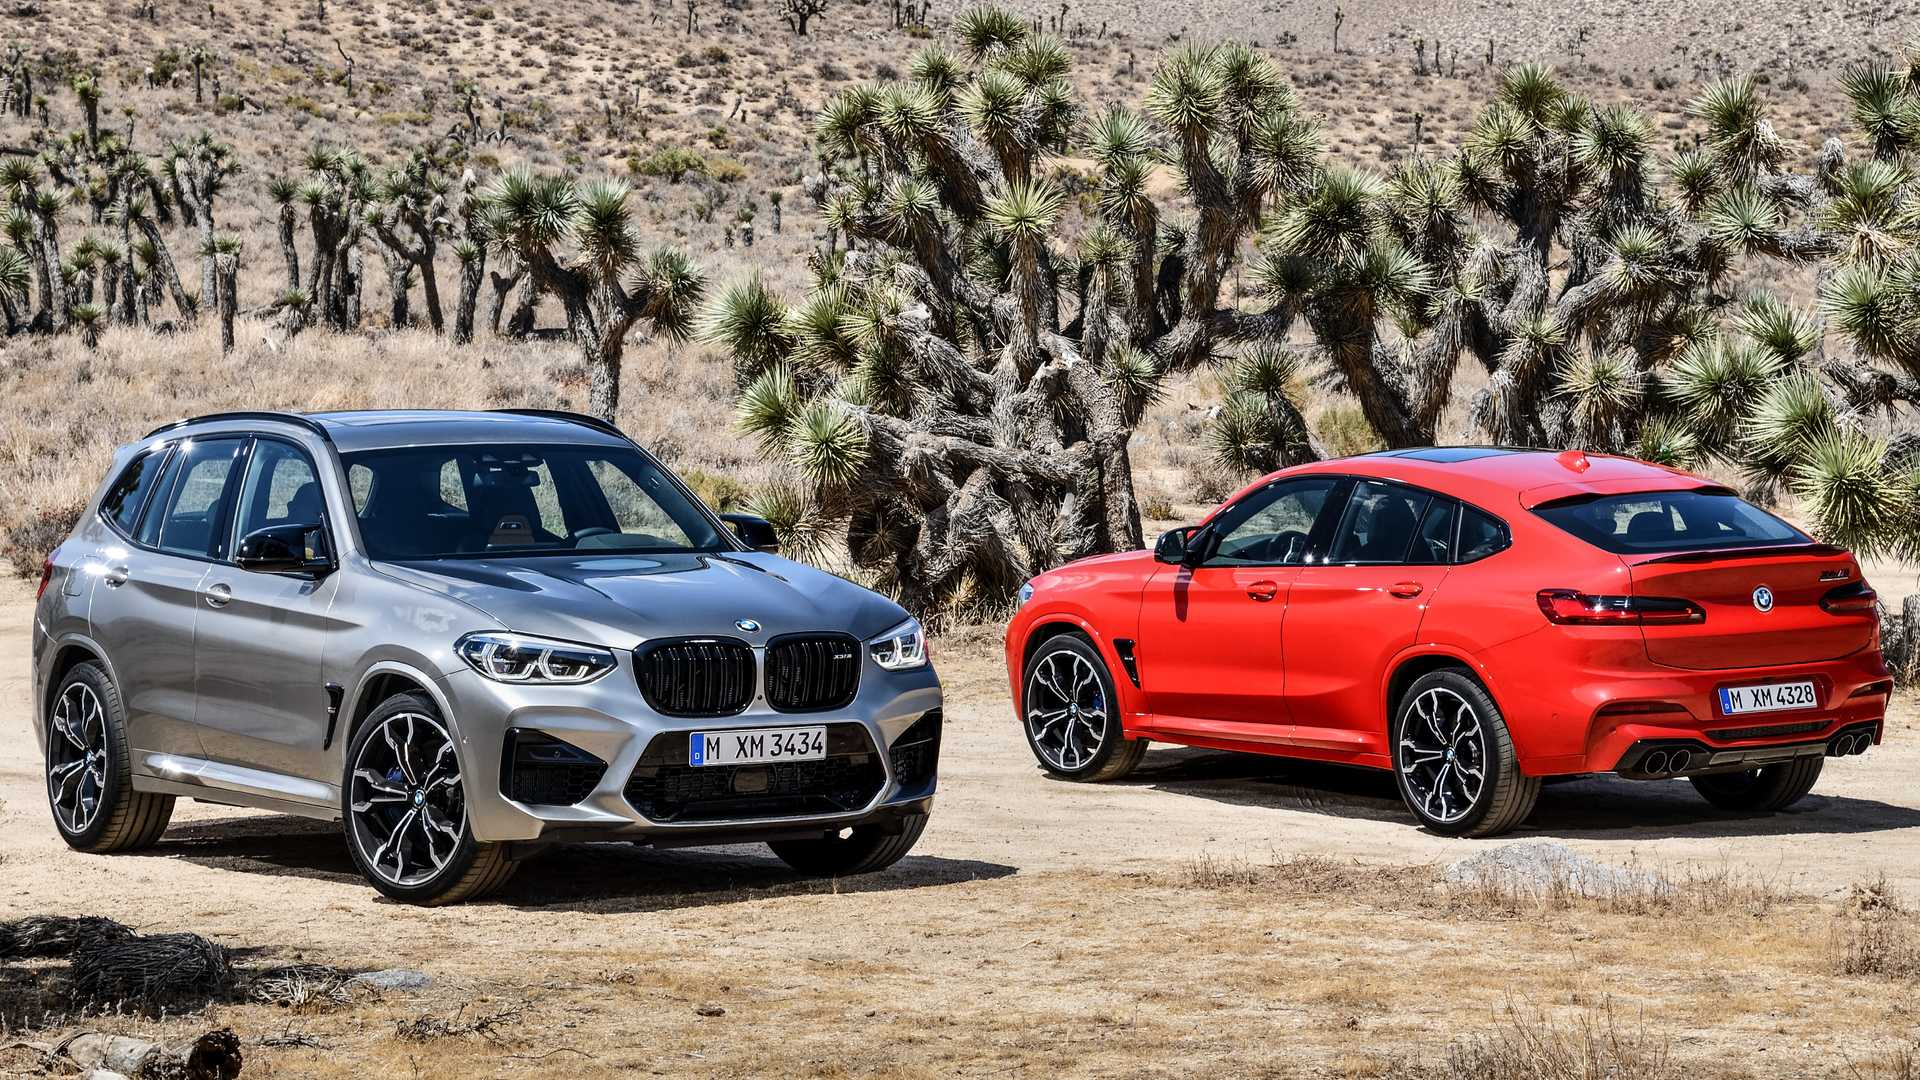 2019 BMW X3 M: V-6 Power, Design >> 2020 Bmw X3 M X4 M Put Sport In Suv With 473 Hp